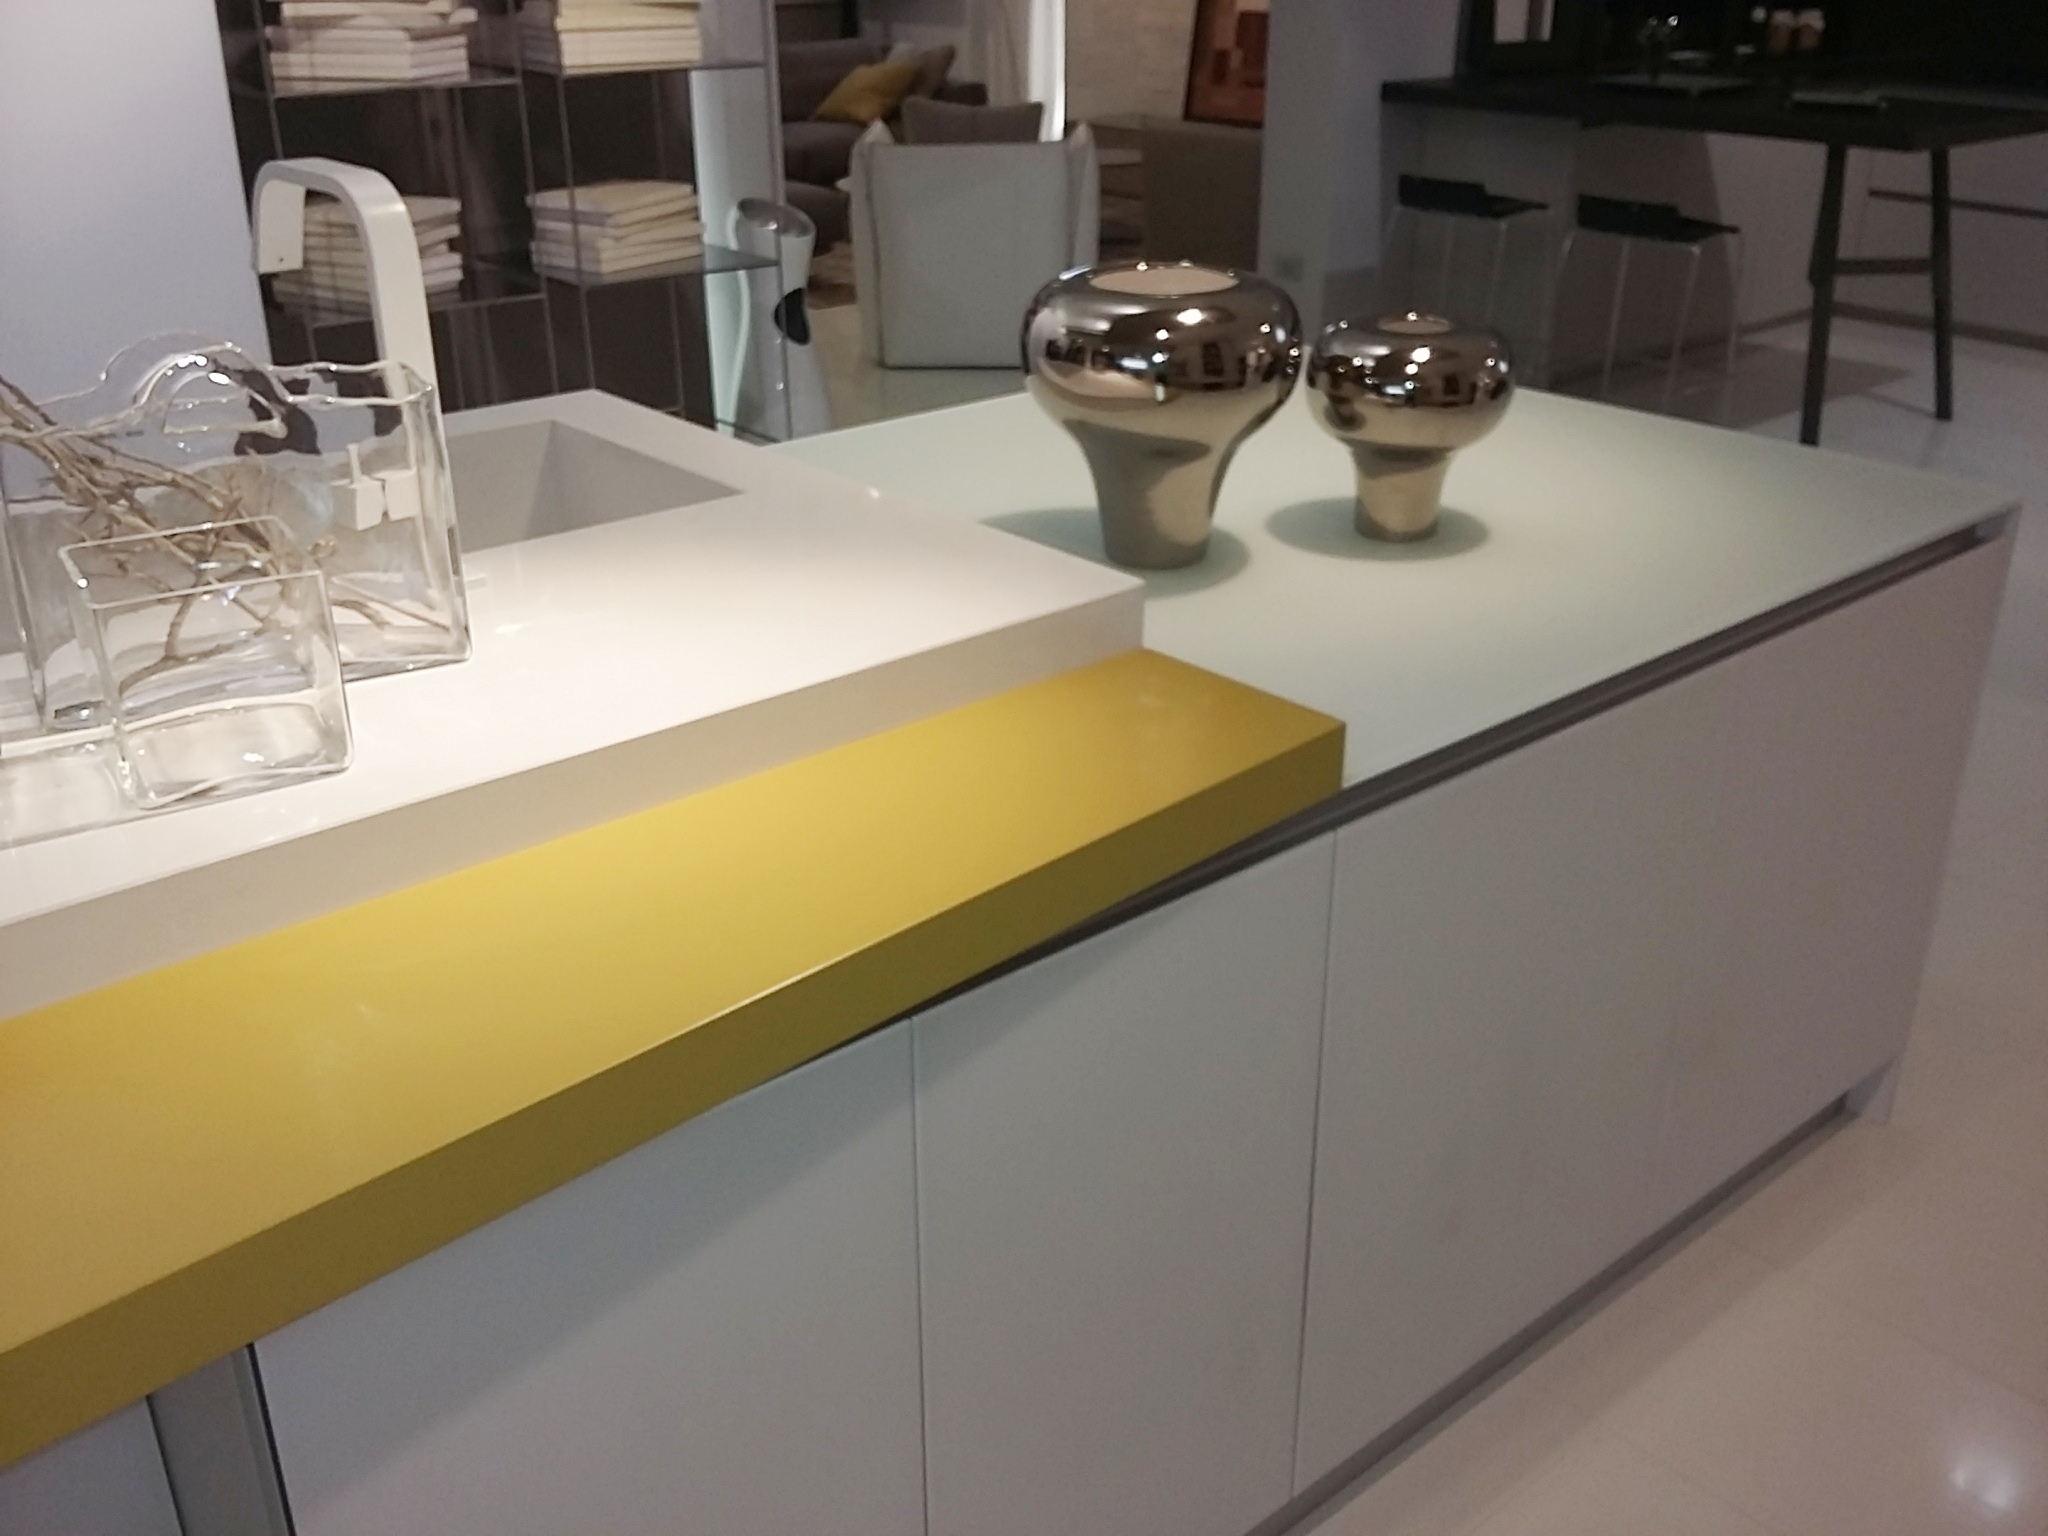 Beautiful Lavelli Cucina In Ceramica Ideas - Embercreative.us ...